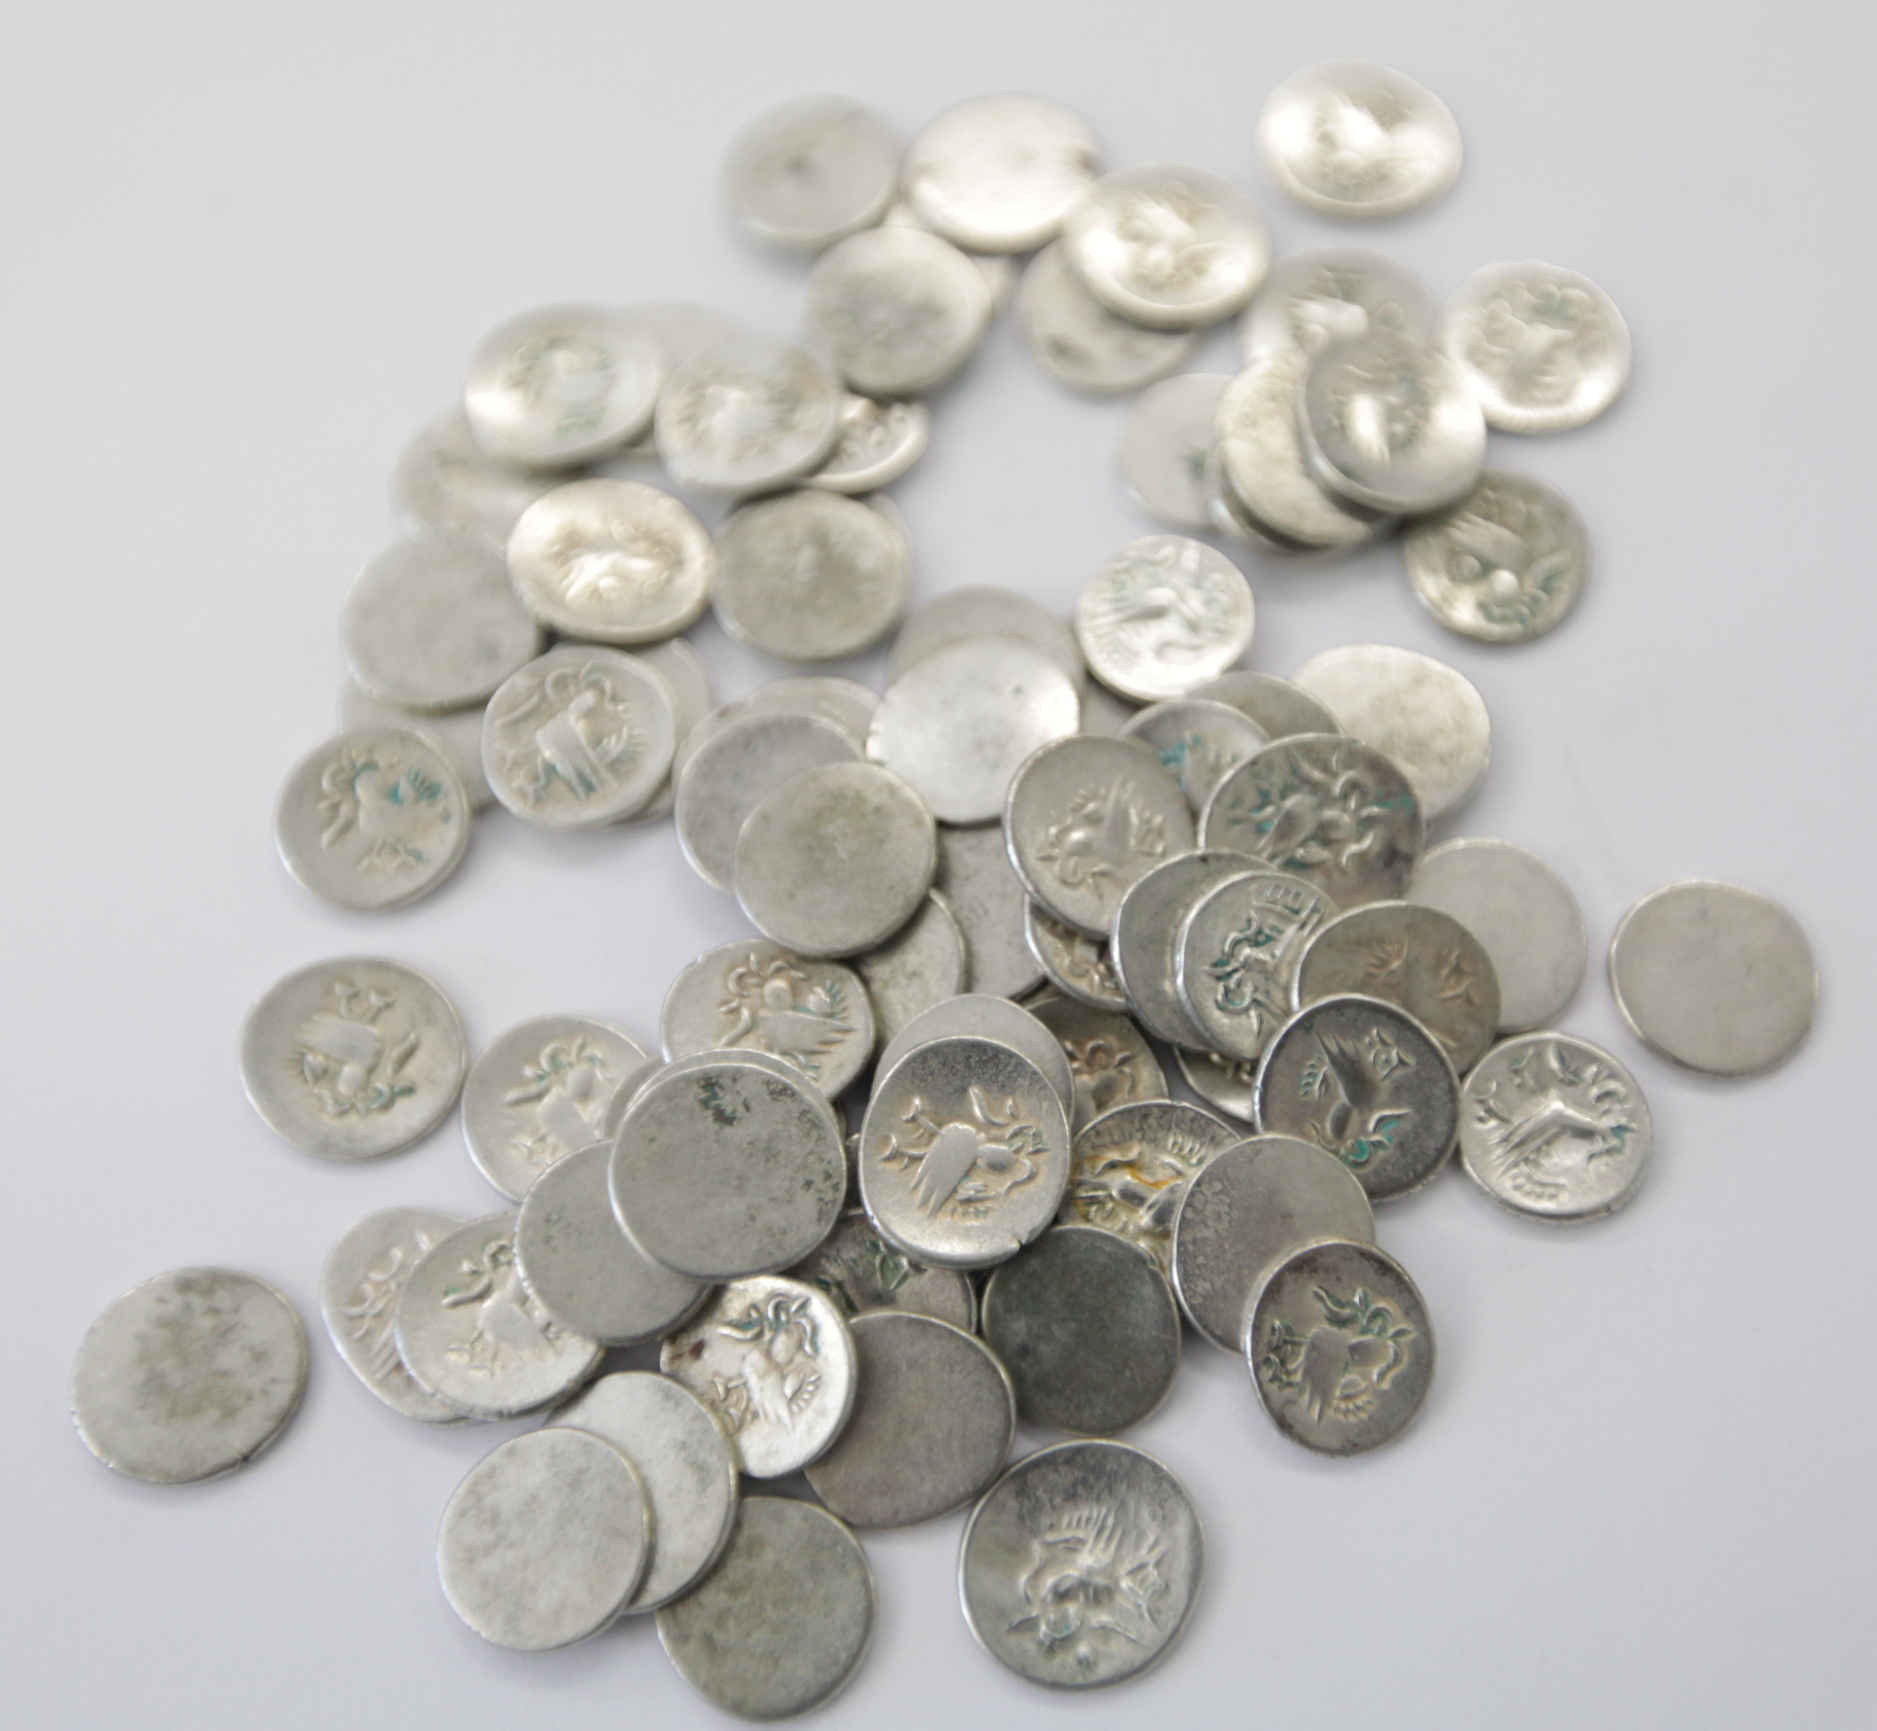 Lot 697 - CAMBODIAN SILVER COINAGE. (80) C 1840 Tical coinage in silver, of one side strikings.